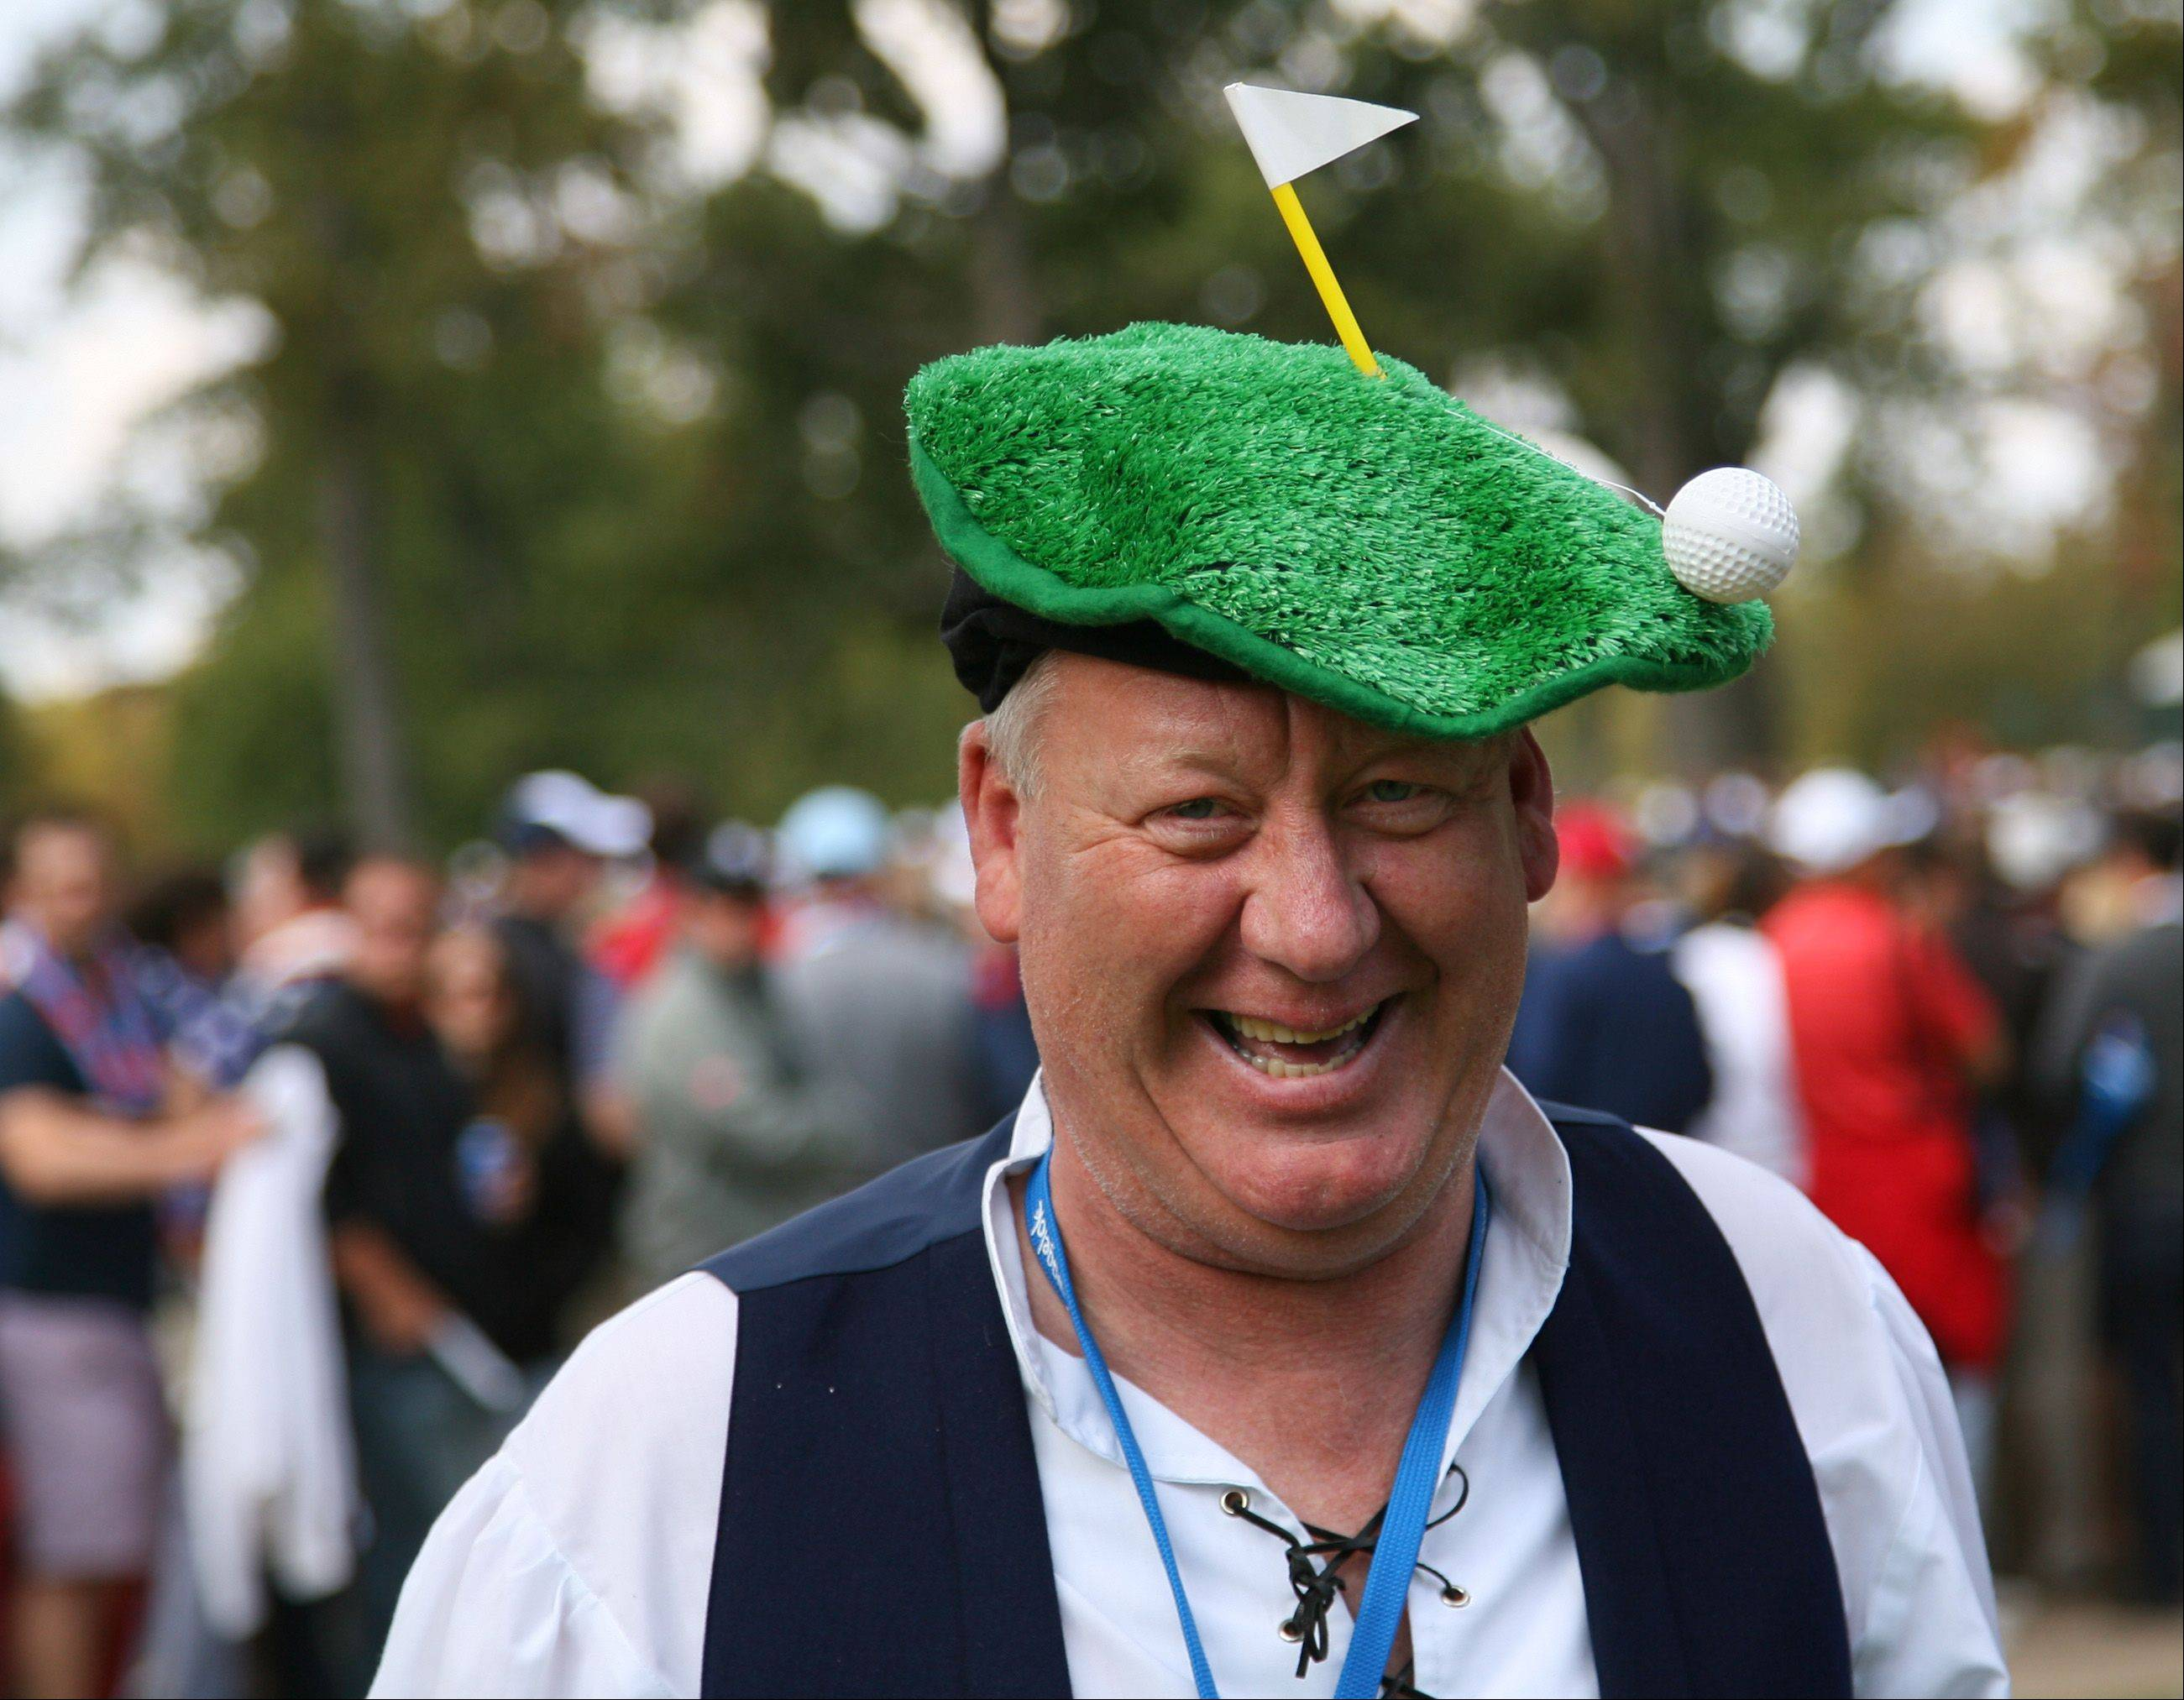 A Team Europe fan is all smiles with a rather ingenious hat at Medinah Country Club.